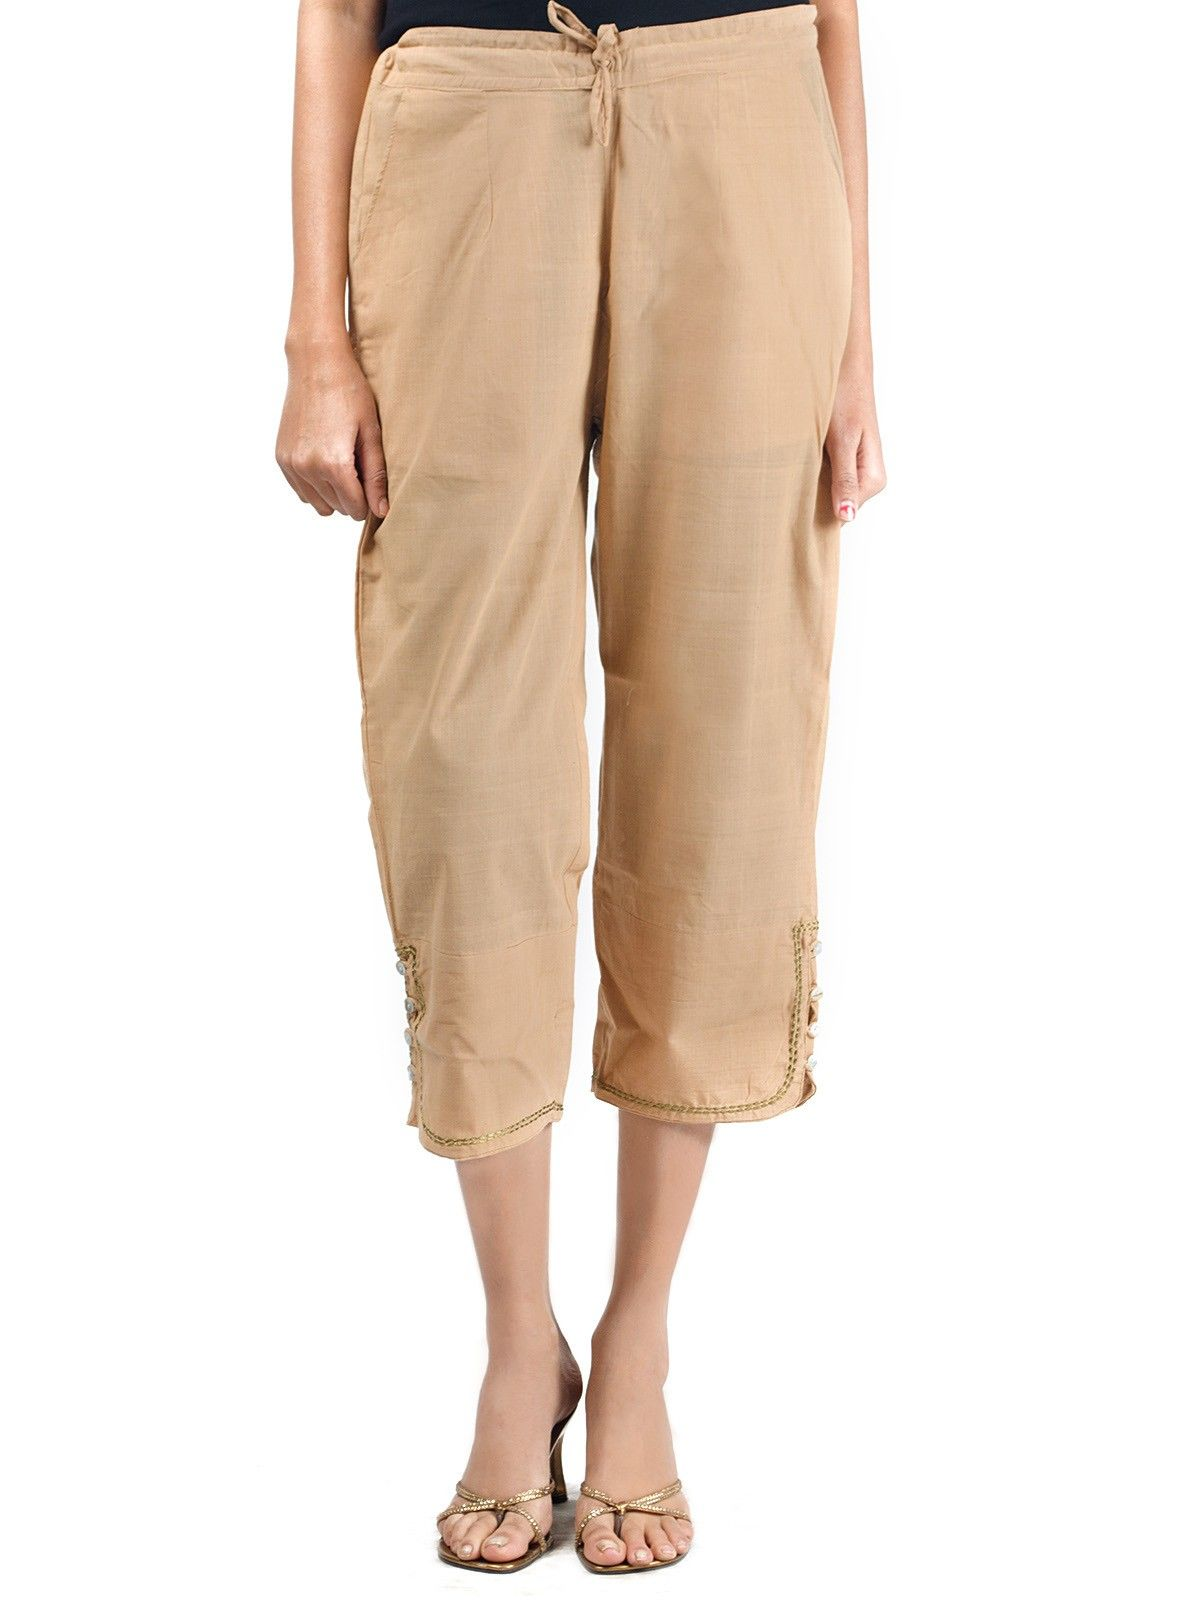 Mangalgiri Cotton Ankle Length Pants With Button Opening in Beige